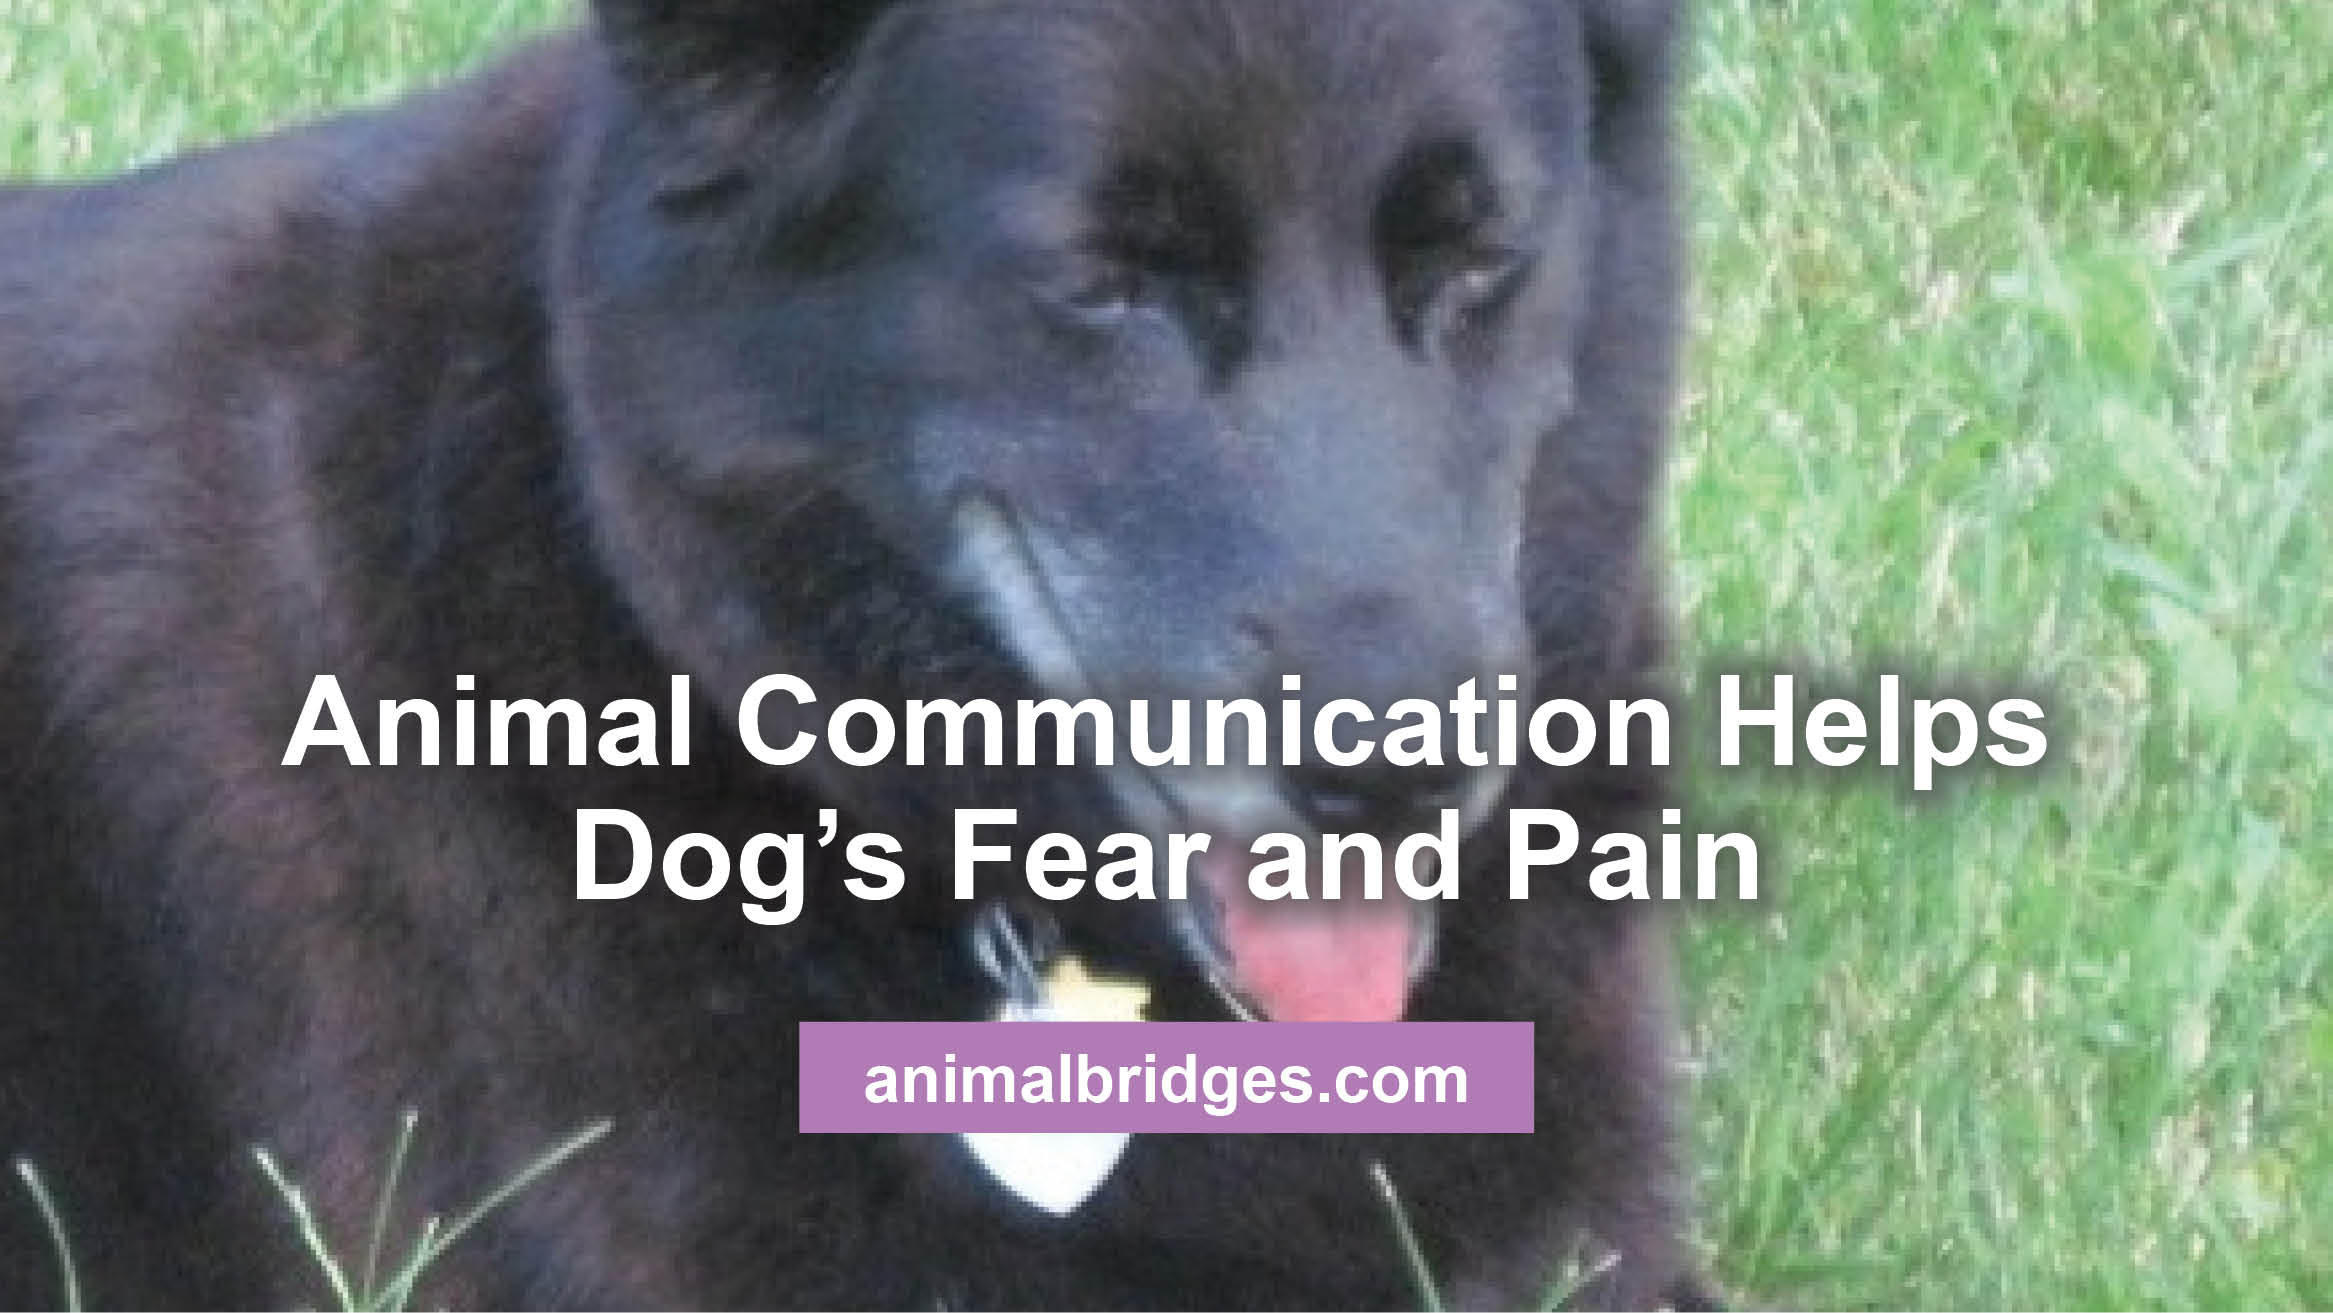 dogs-fear-and-pain